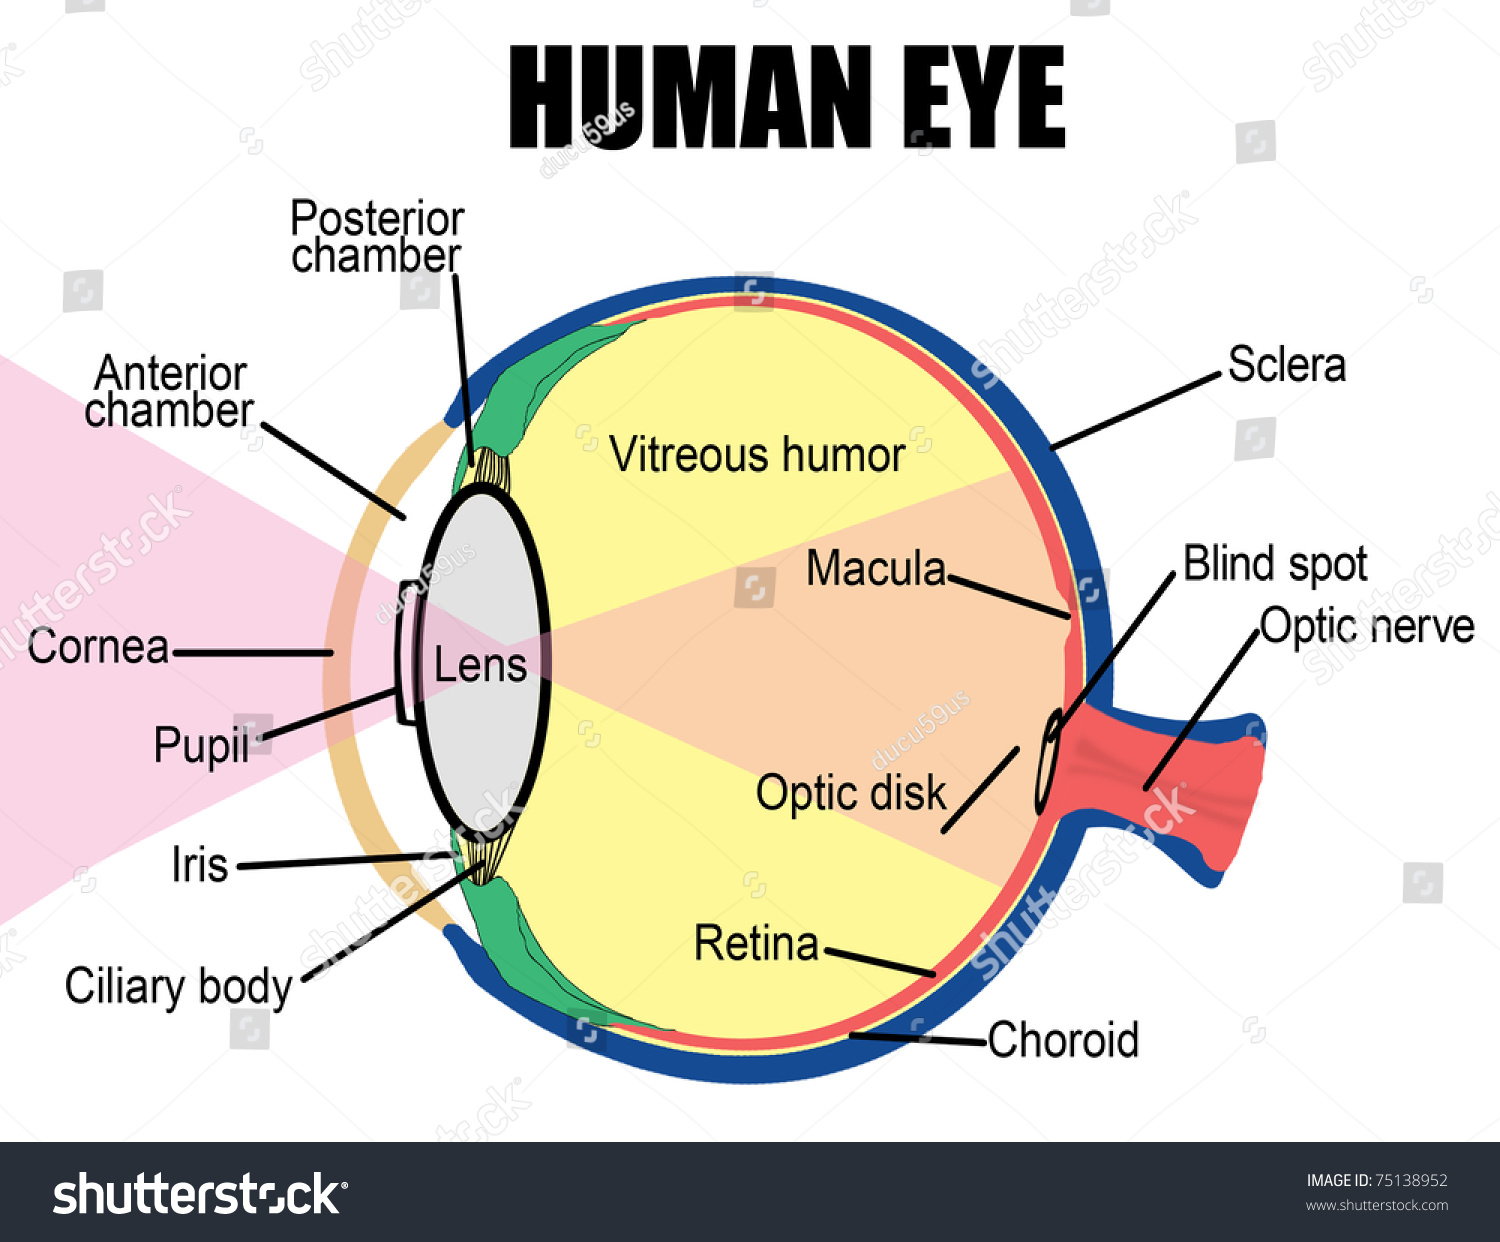 Anatomy Human Eye Vector Illustration For Stock Vector 75138952 ...